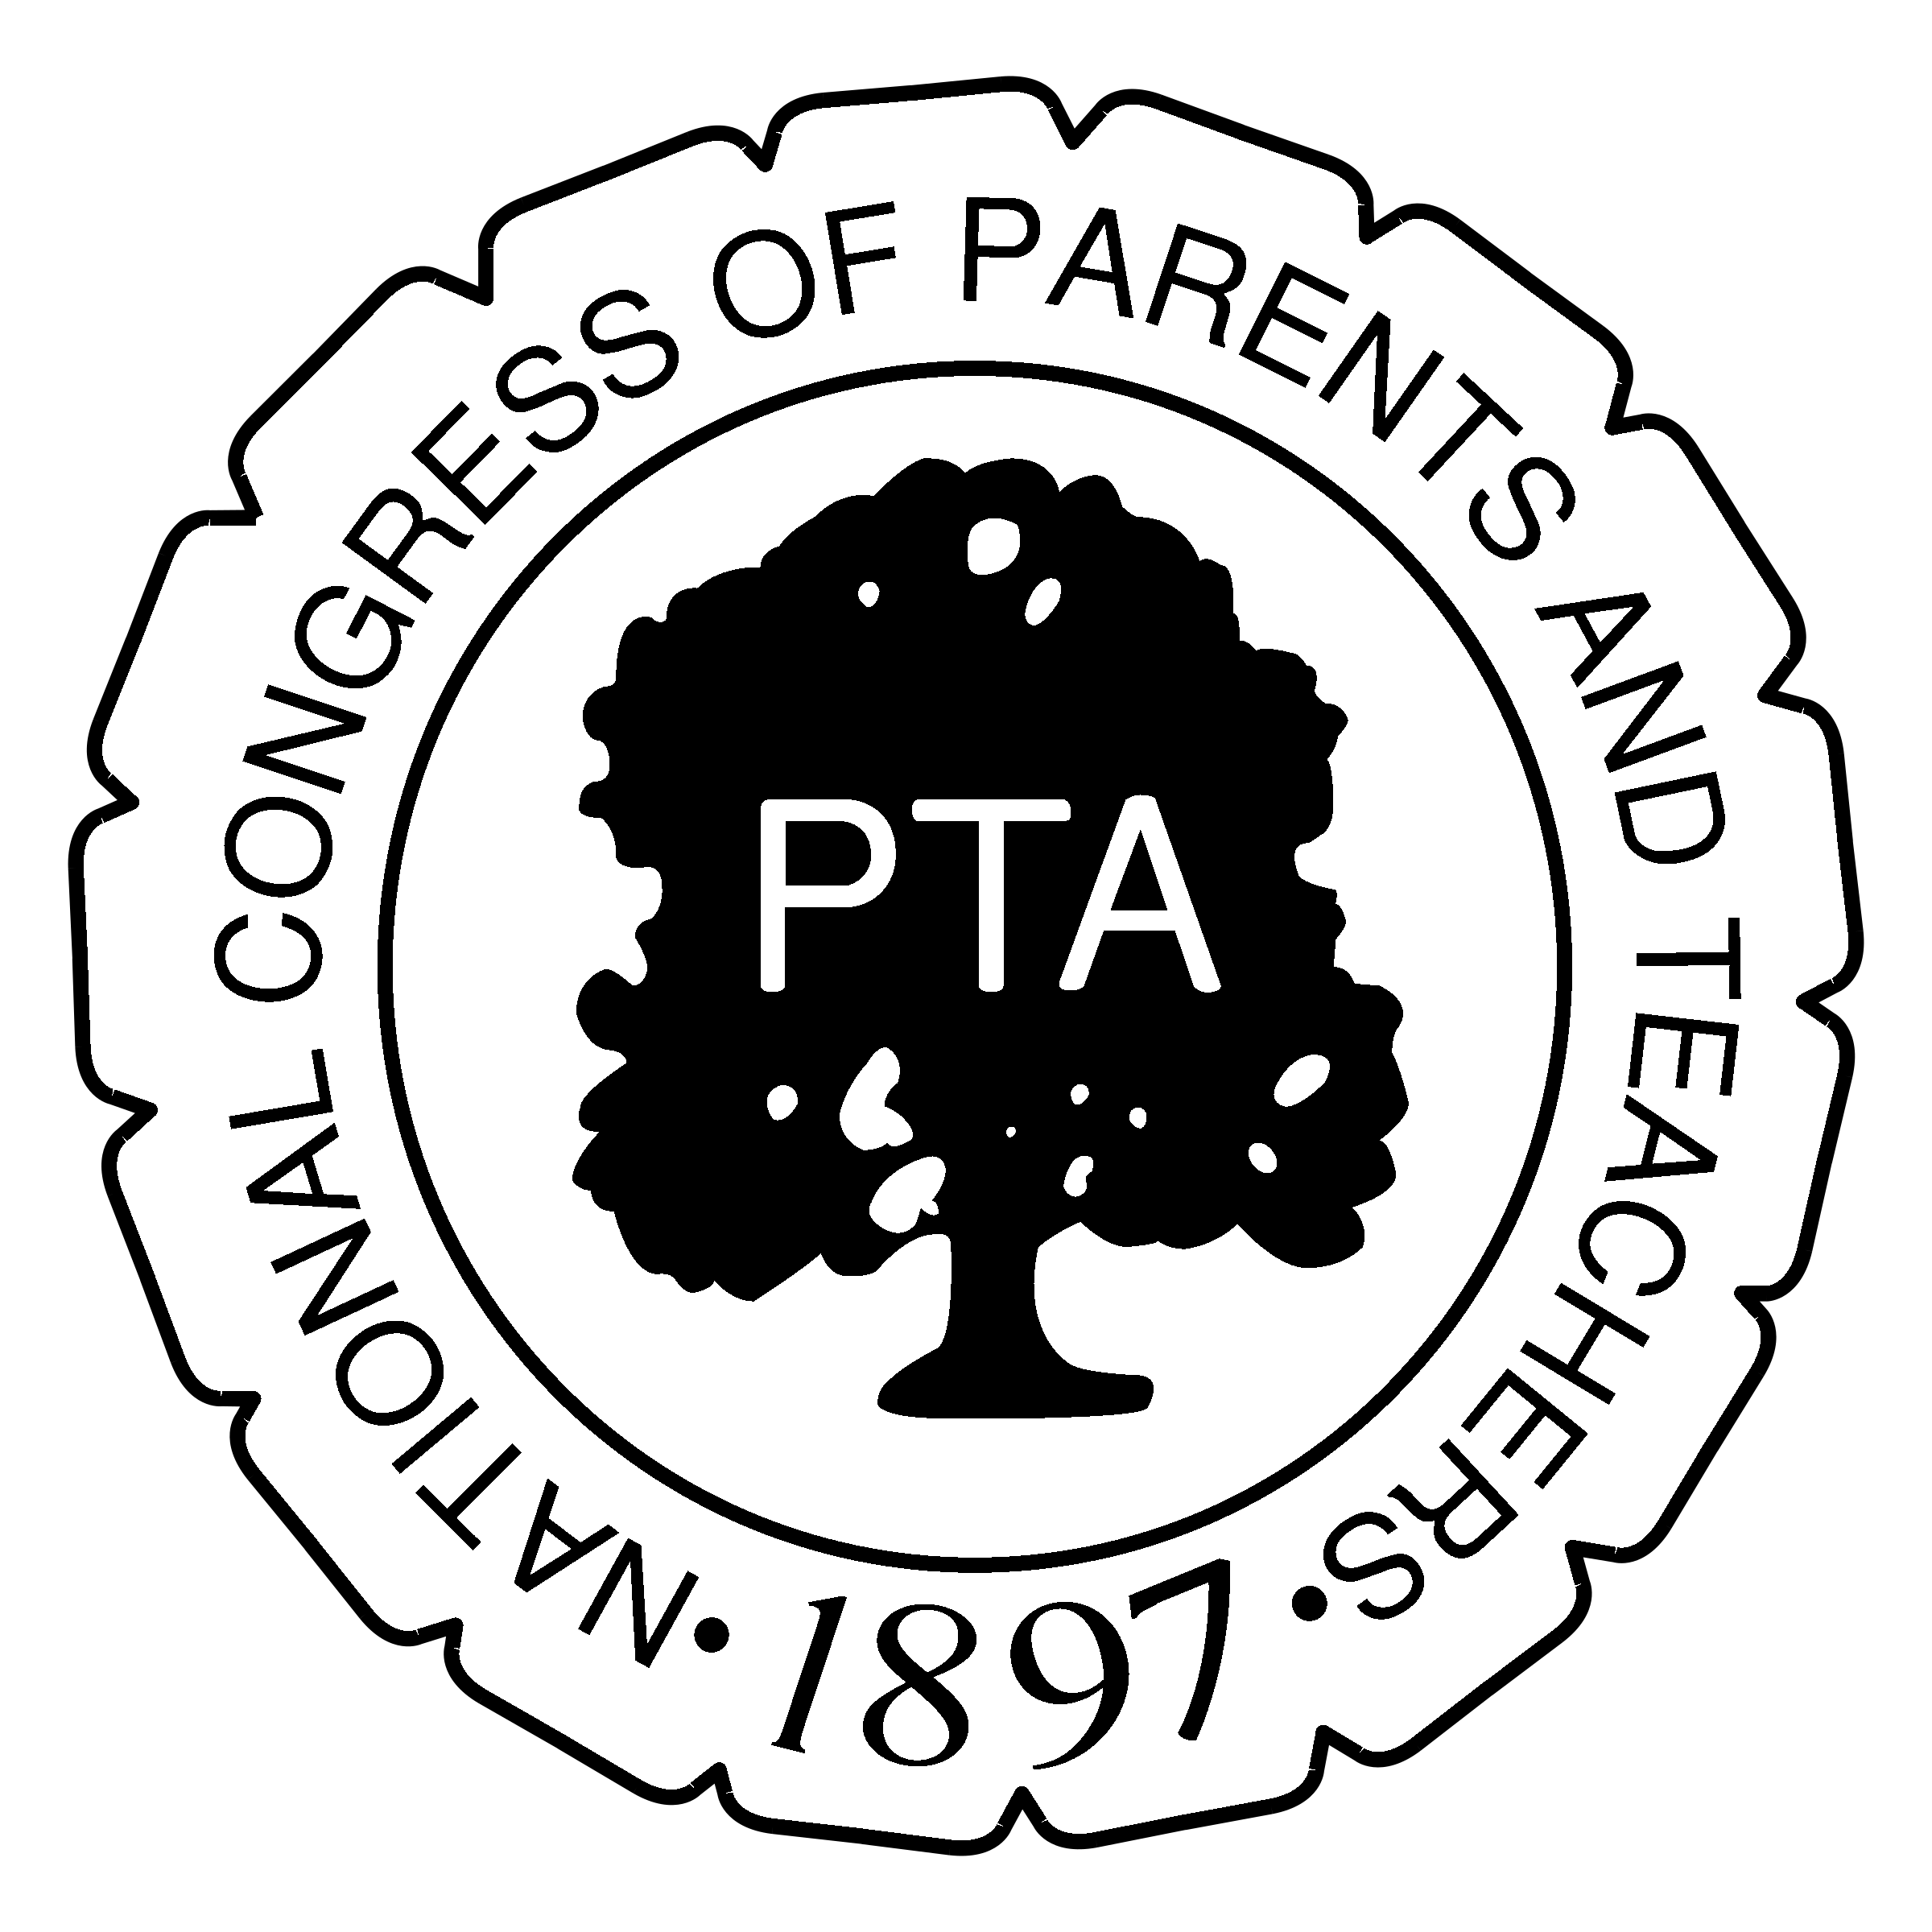 PTA Logo PNG Transparent & SVG Vector.